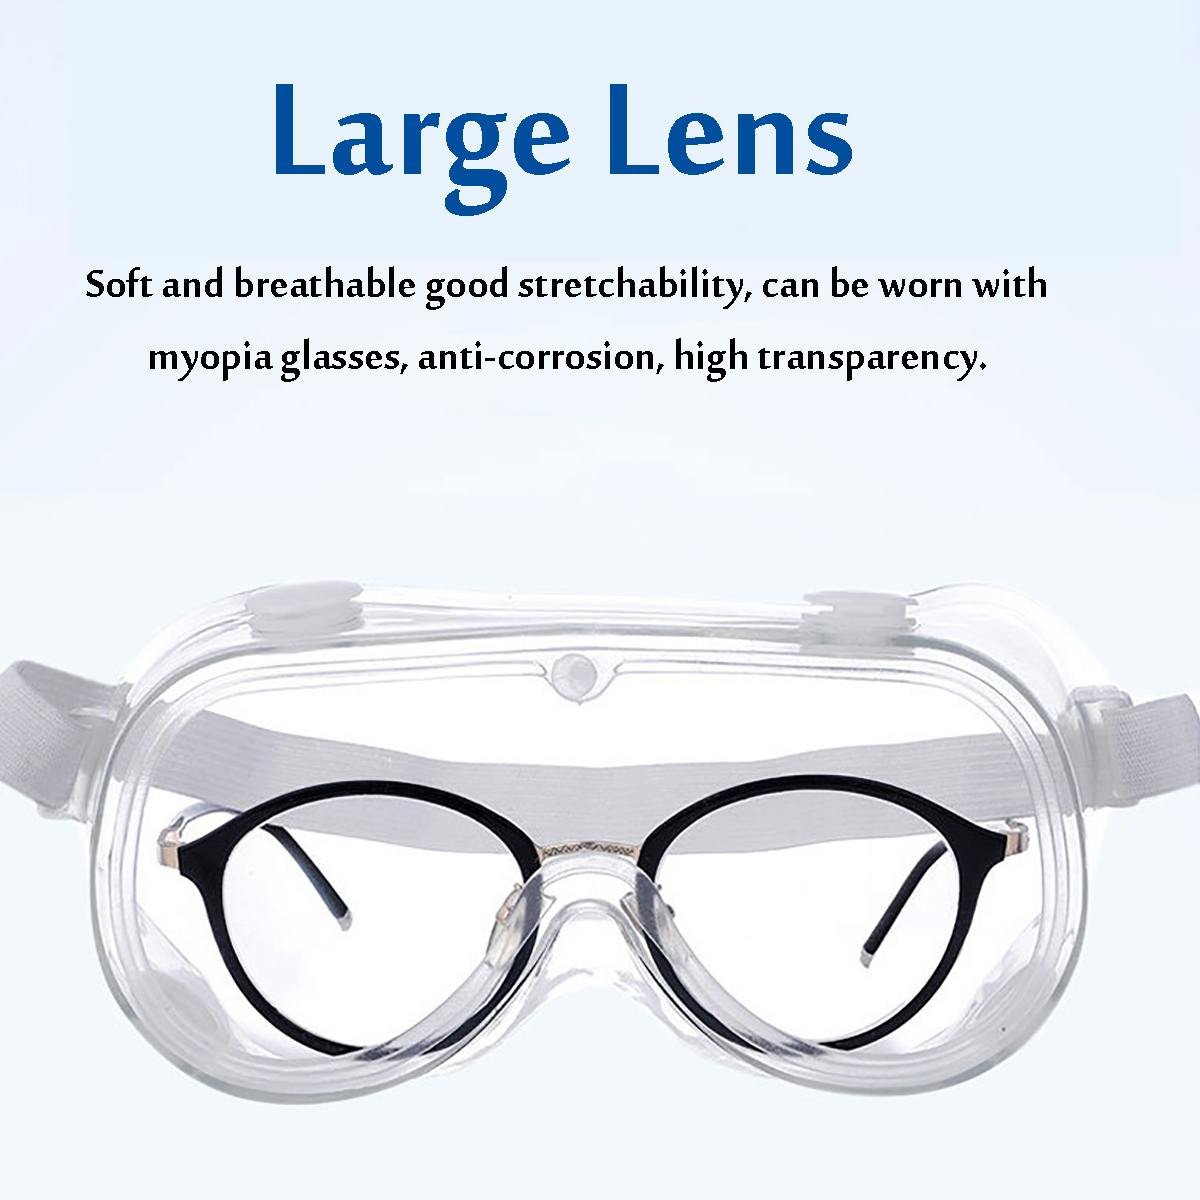 Protective Medical Goggles With Fully Enclosed Transparent Lens For Hospital And Lab Use